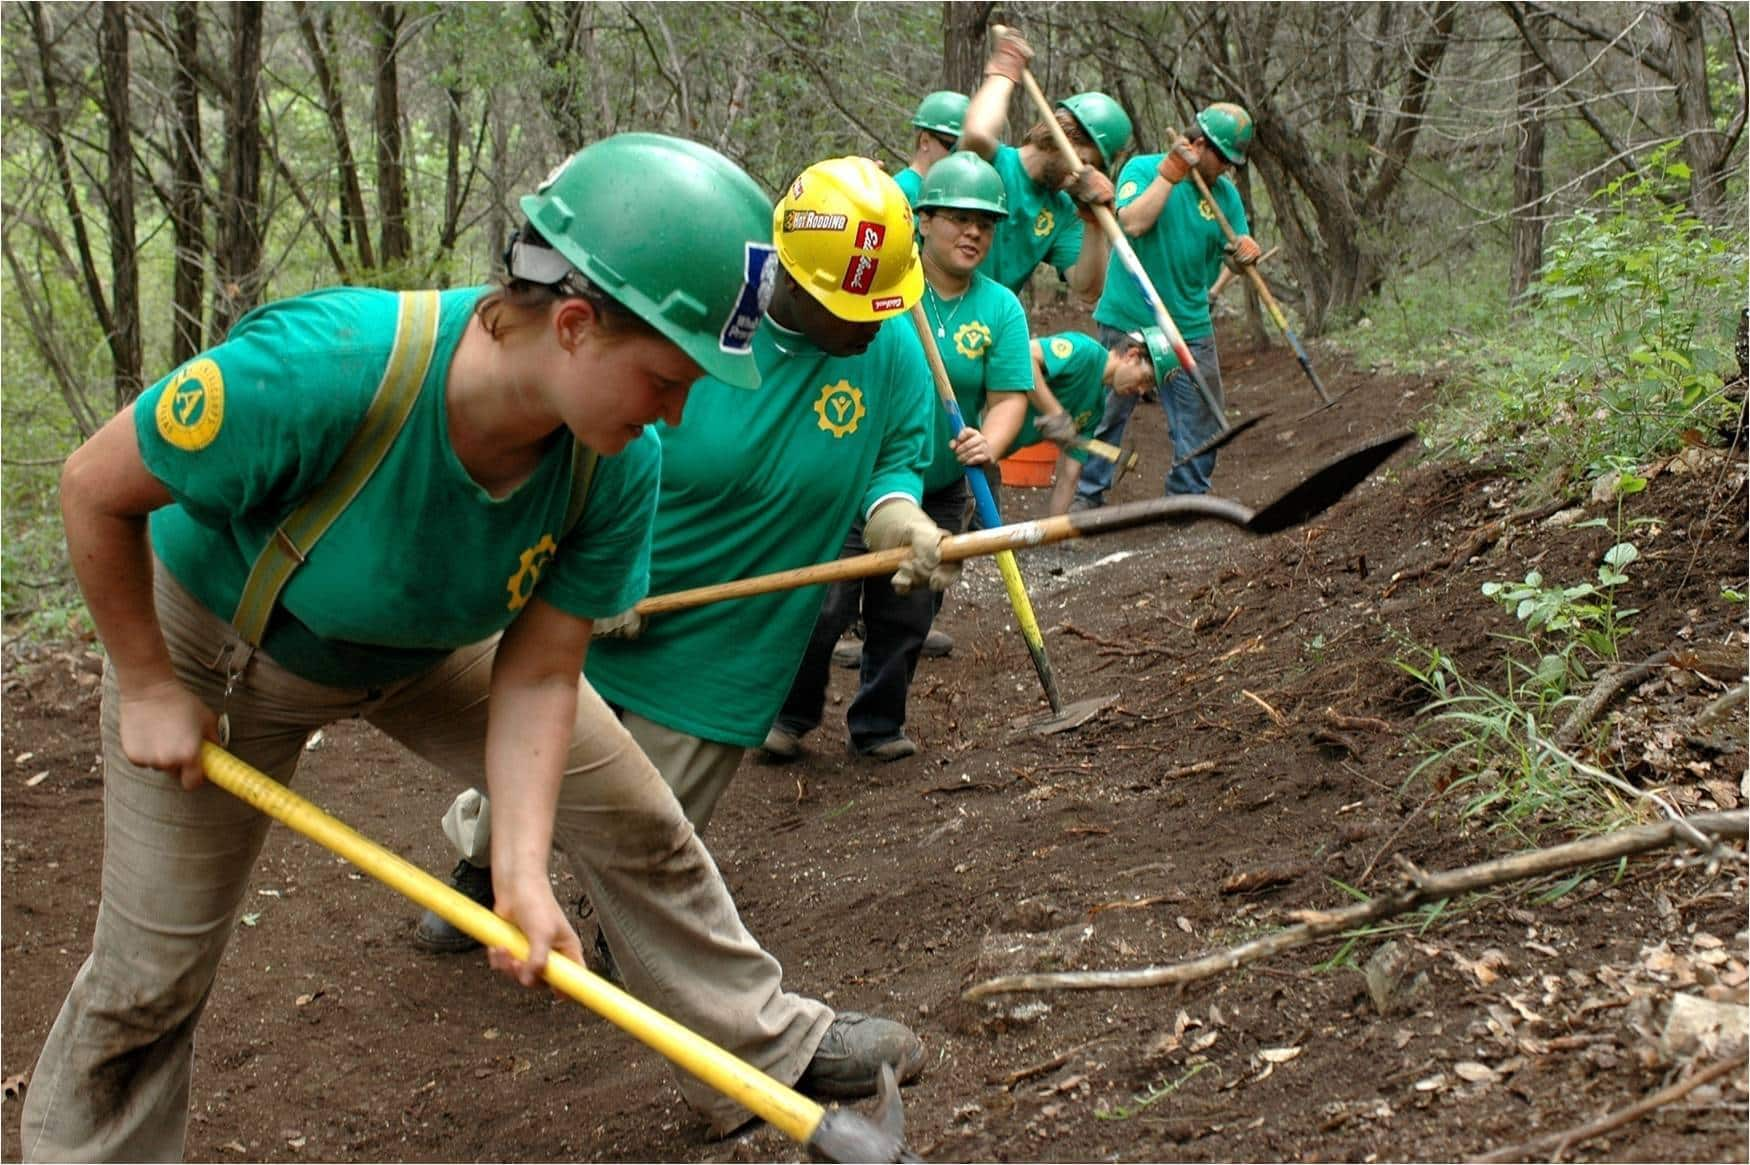 10 Volunteer Trail Organizations to Get your Hands Dirty With